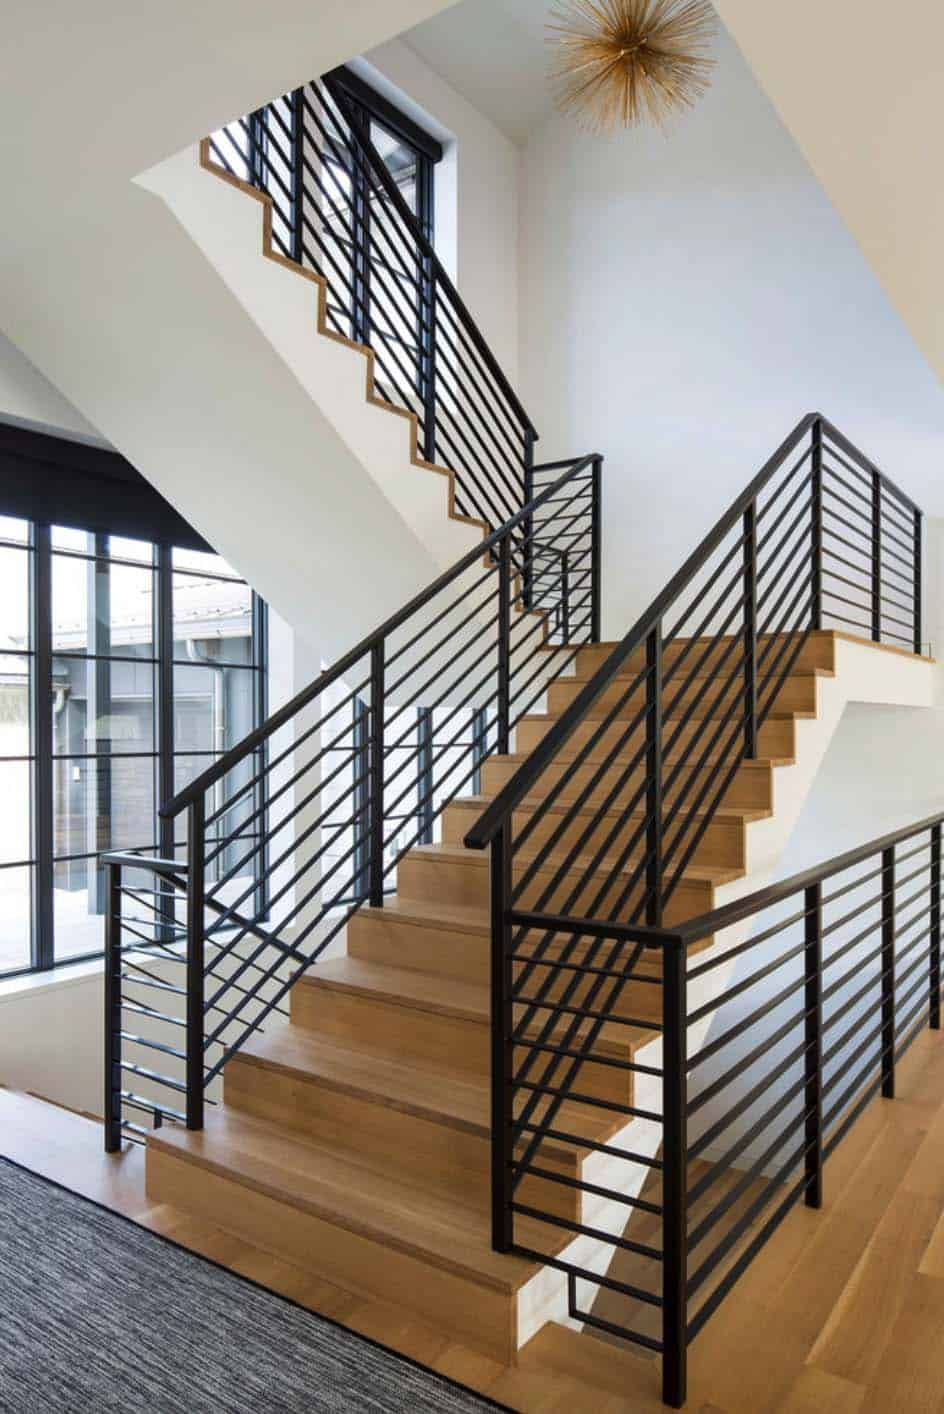 Fabulous Modern Farmhouse With Delightful Details In Minnesota Stair Railing Design Staircase Design Modern Stair Railing